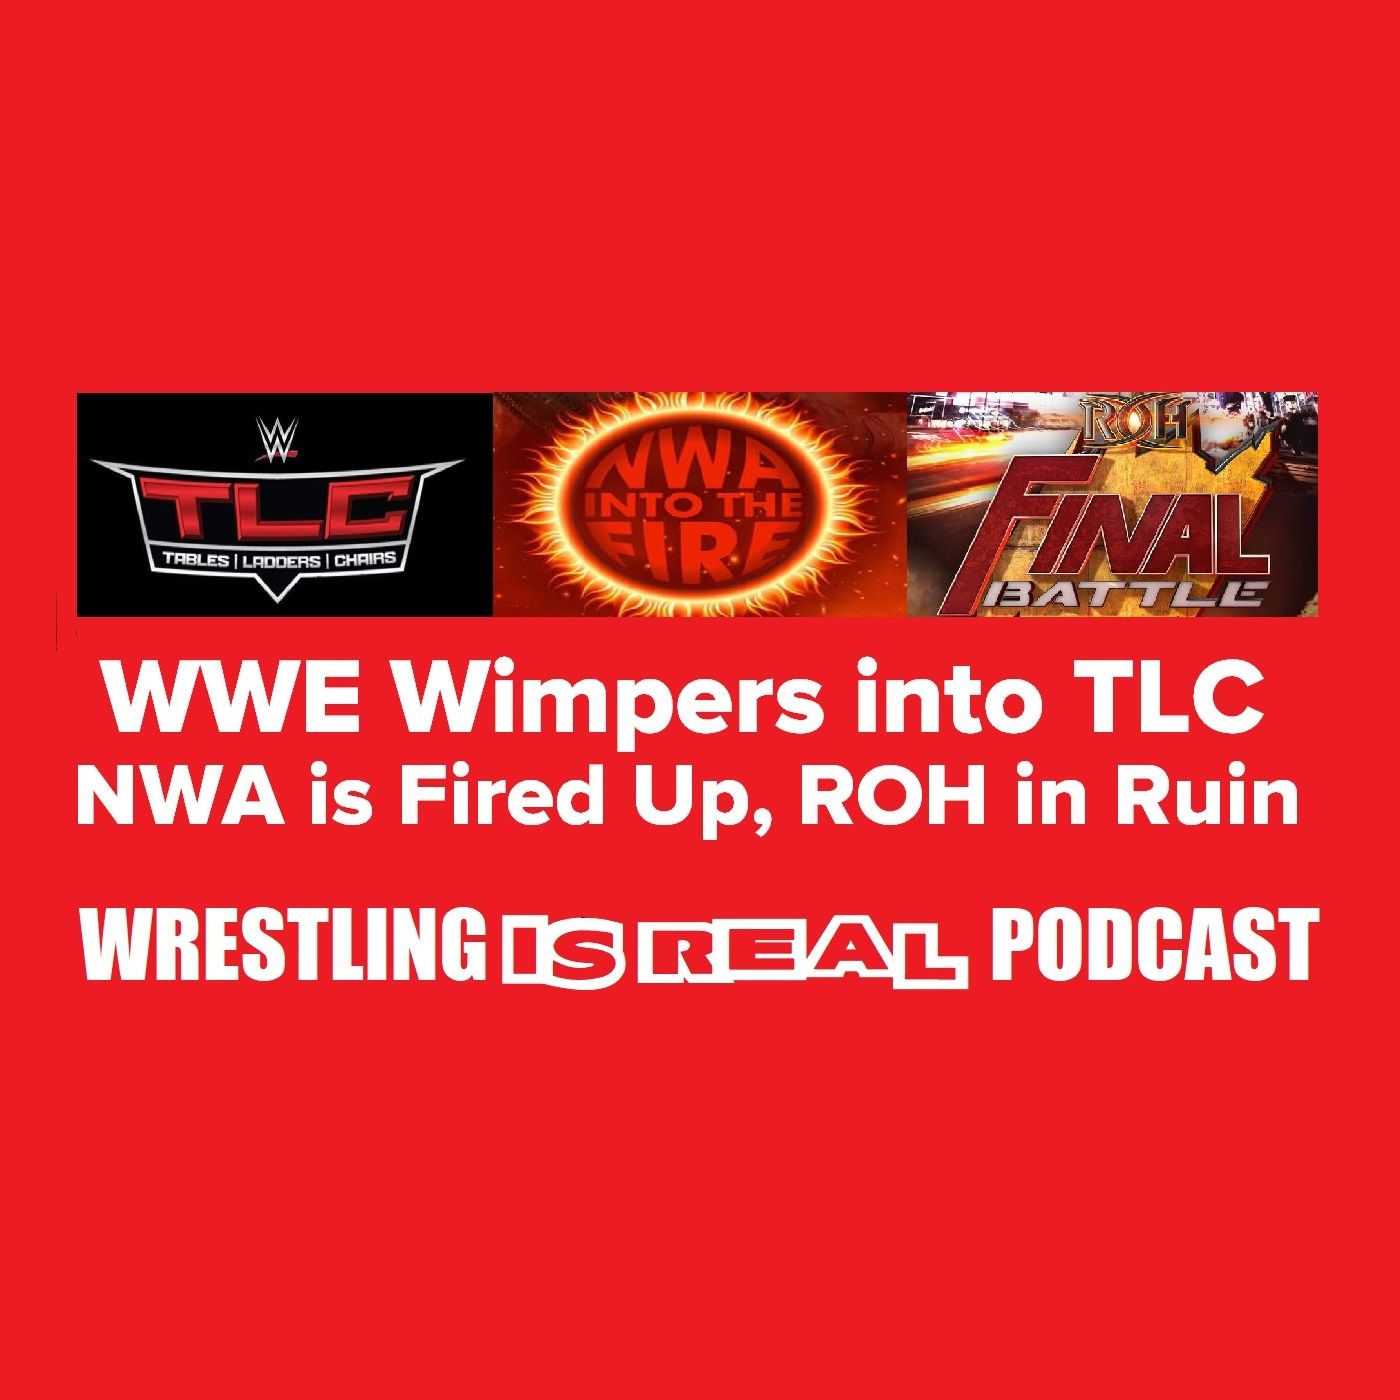 WWE Wimpers into TLC, NWA is Fired Up, ROH in Ruin KOP120519-501